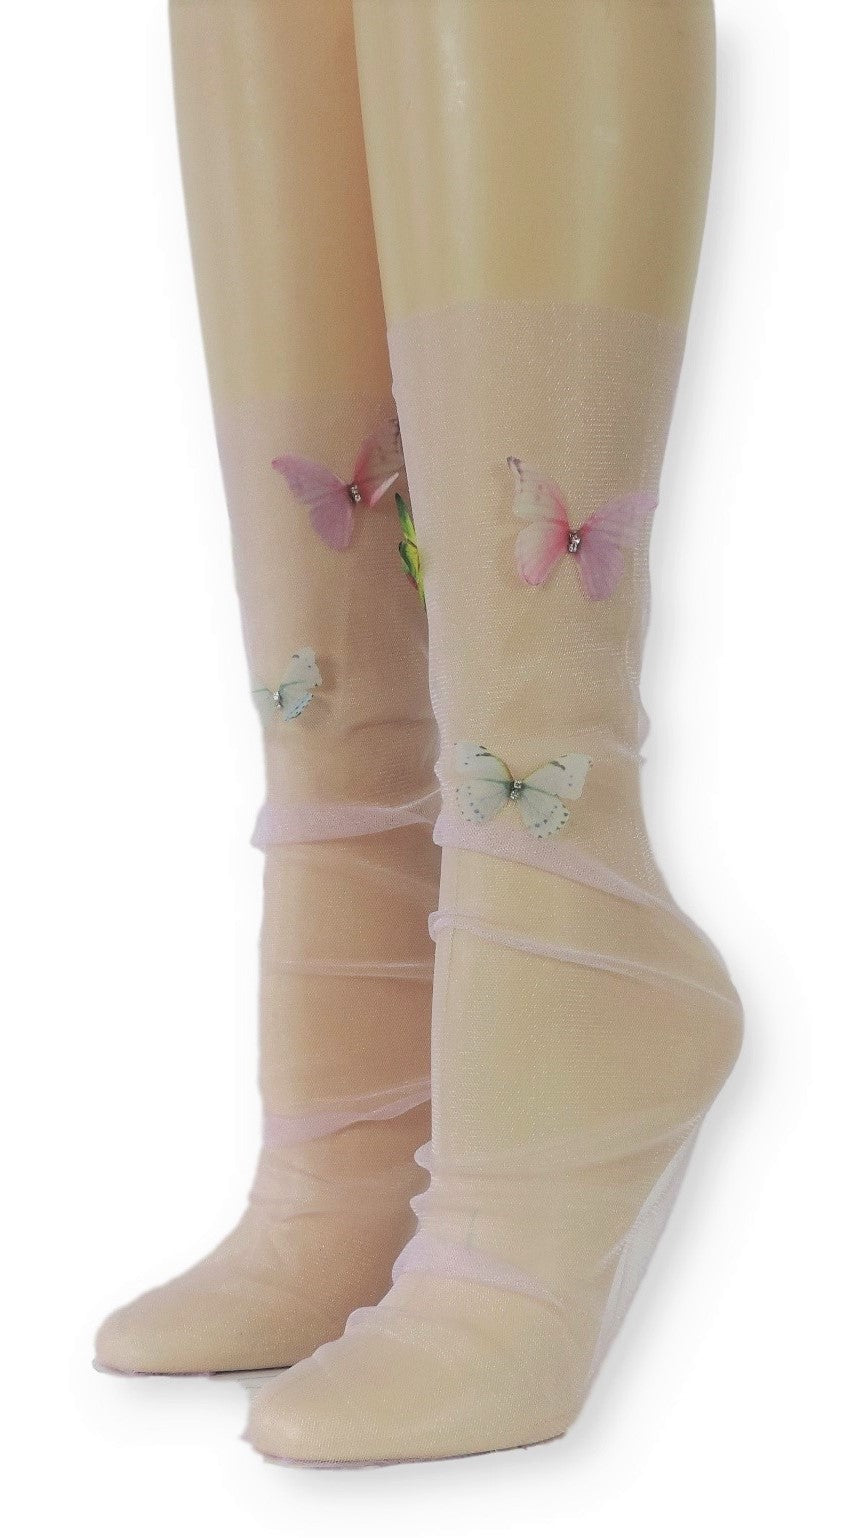 Lavender Tulle Socks with Butterflies - Global Trendz Fashion®